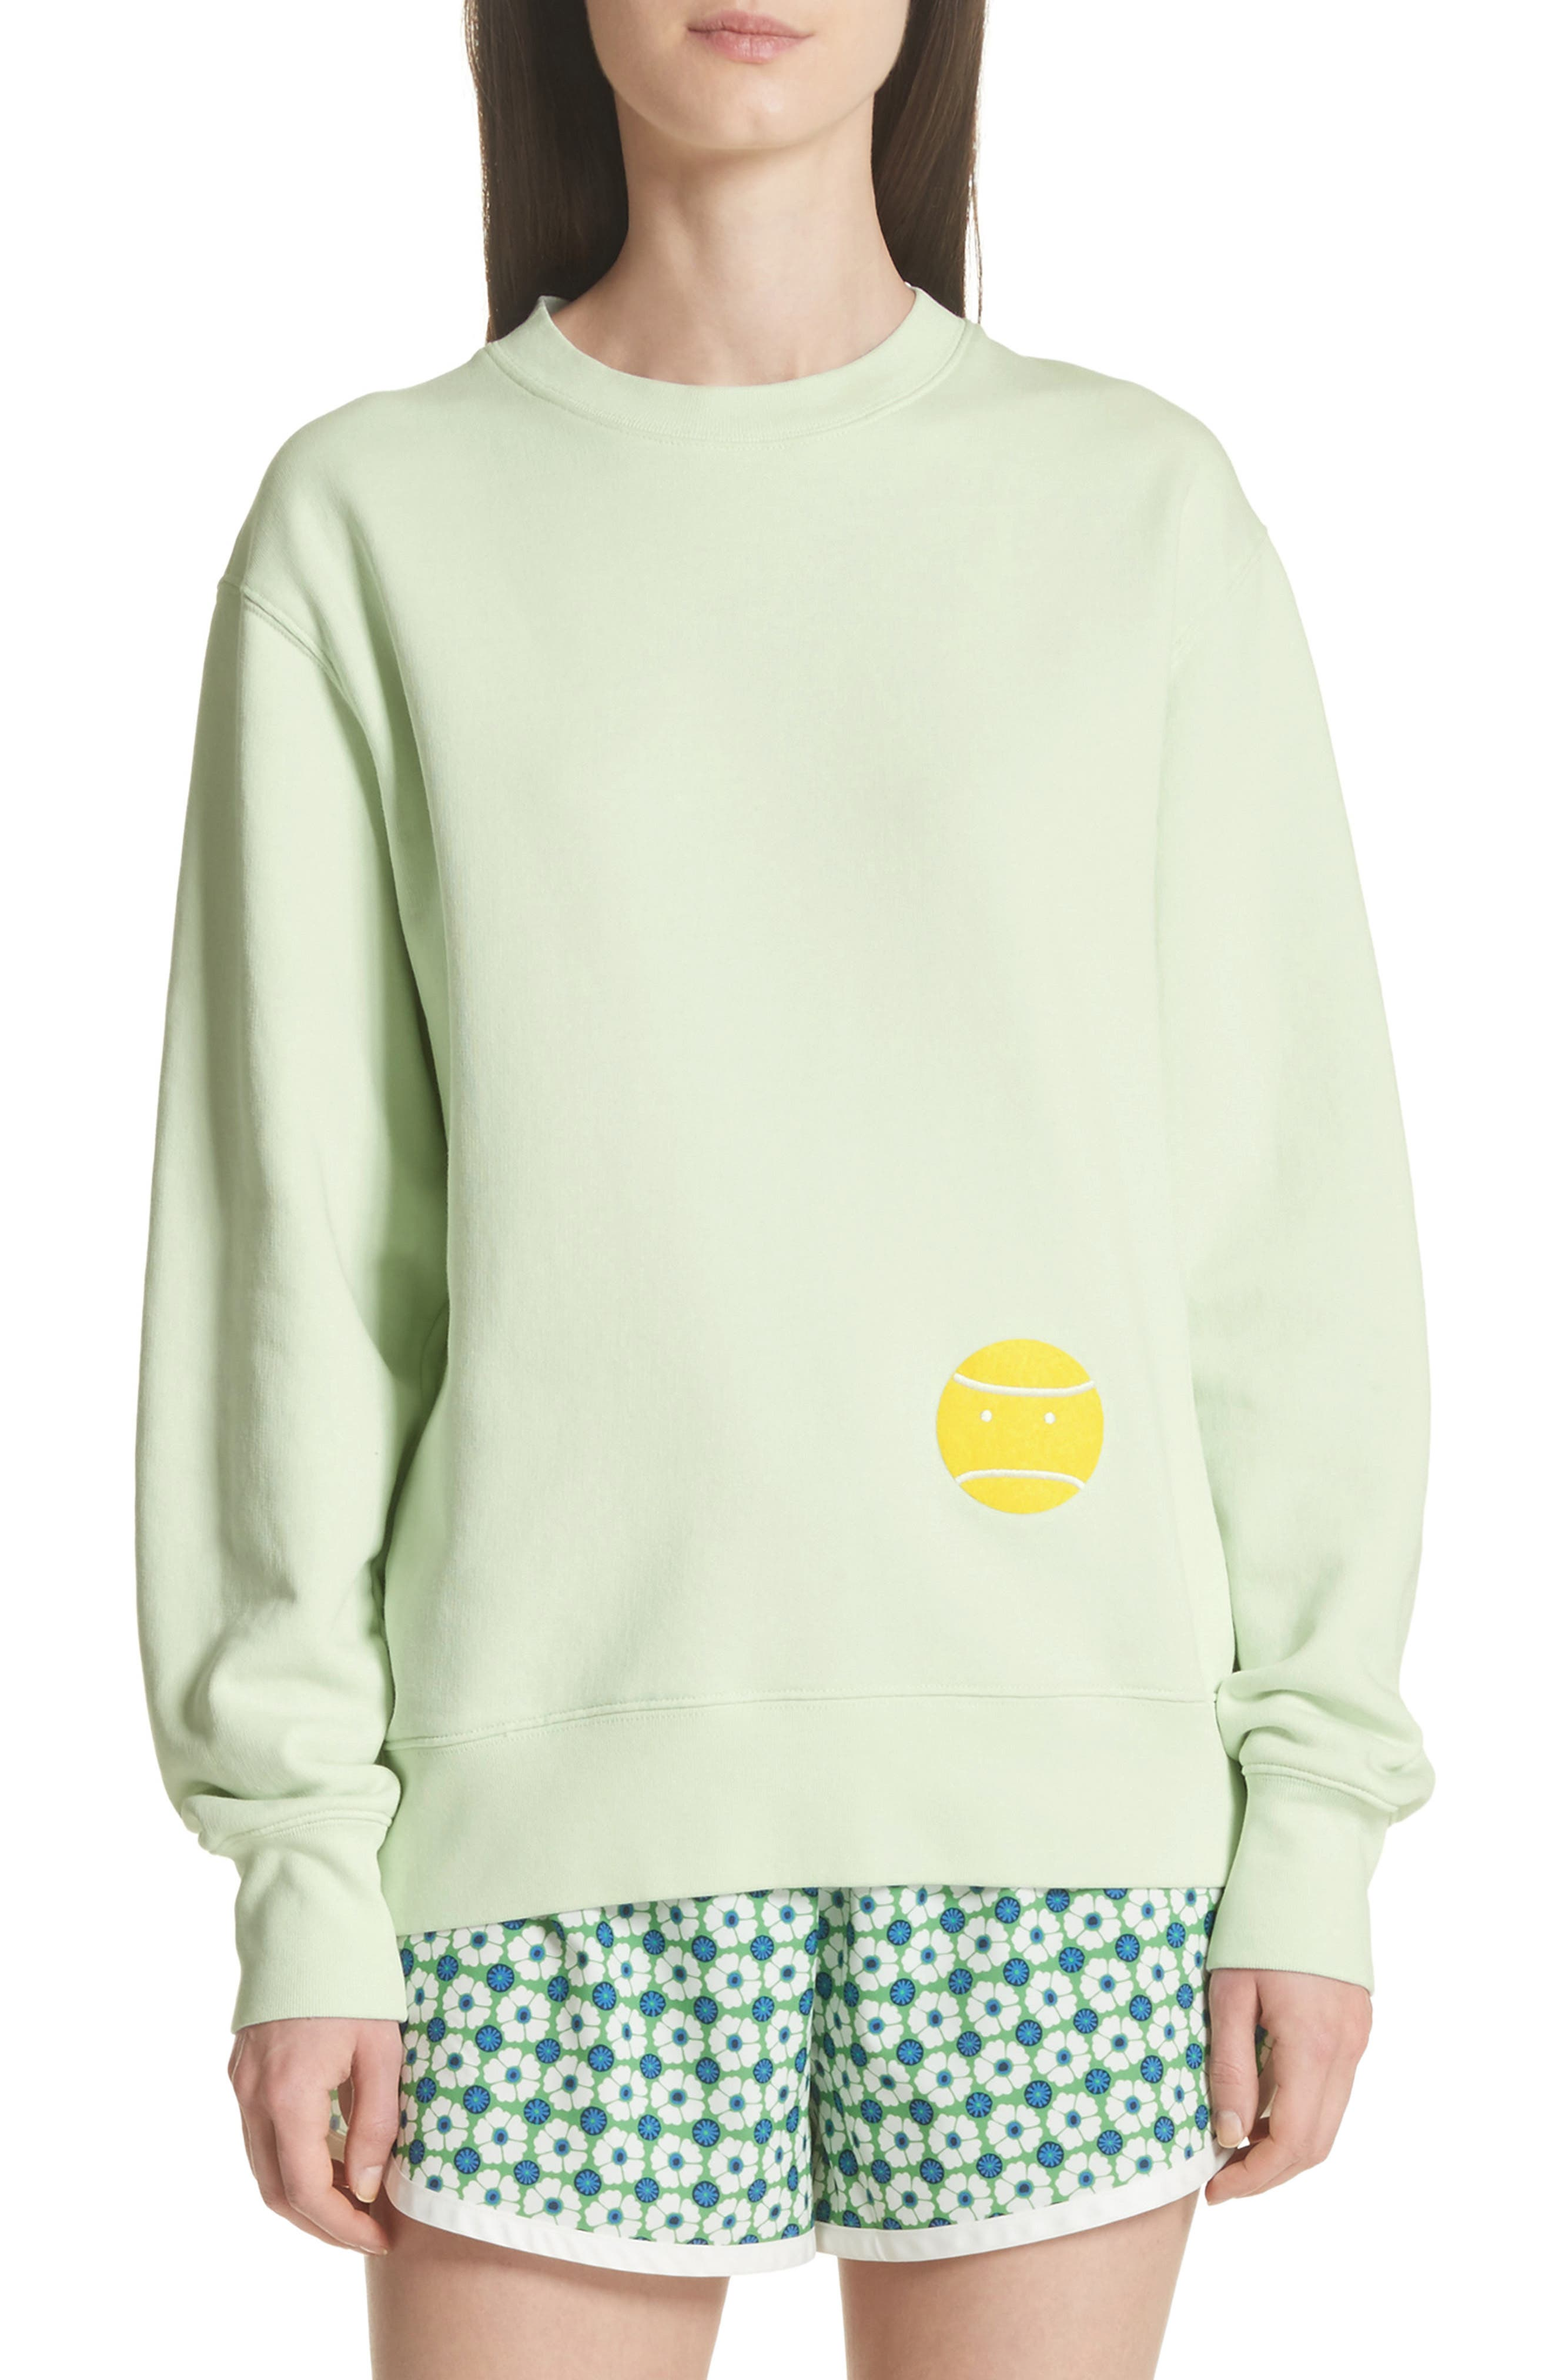 Little Grump French Terry Sweatshirt,                             Main thumbnail 1, color,                             328